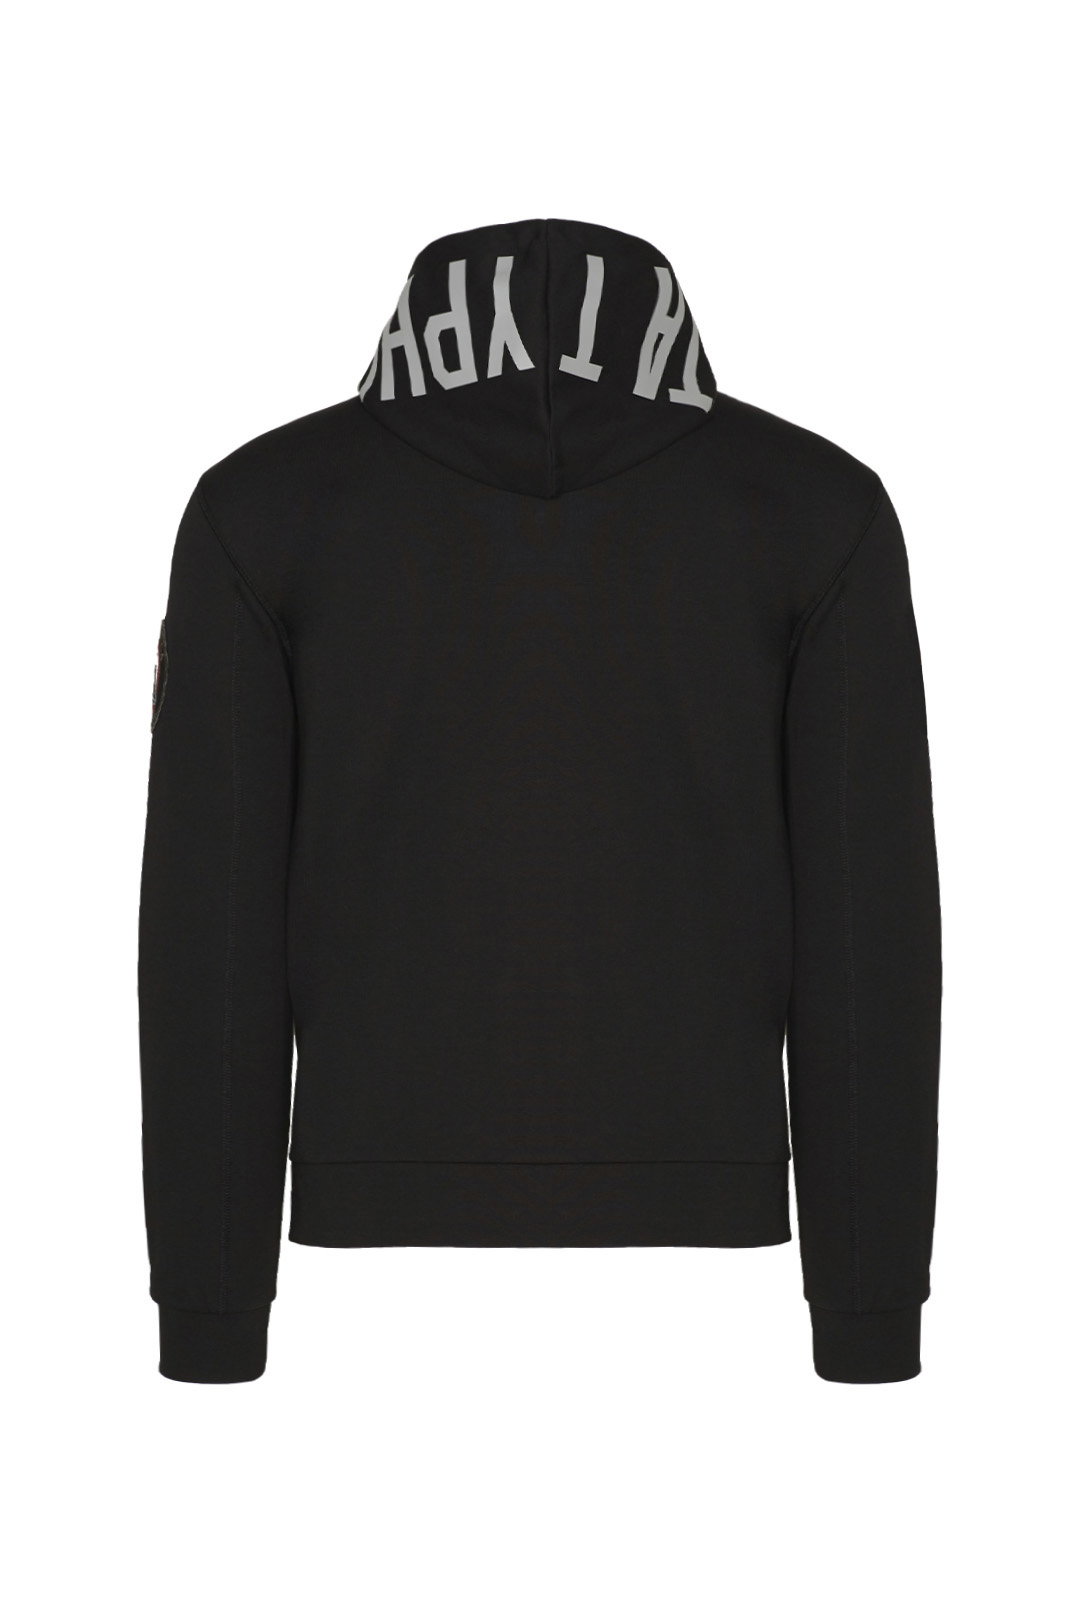 HOODED SWEATSHIRT                        2